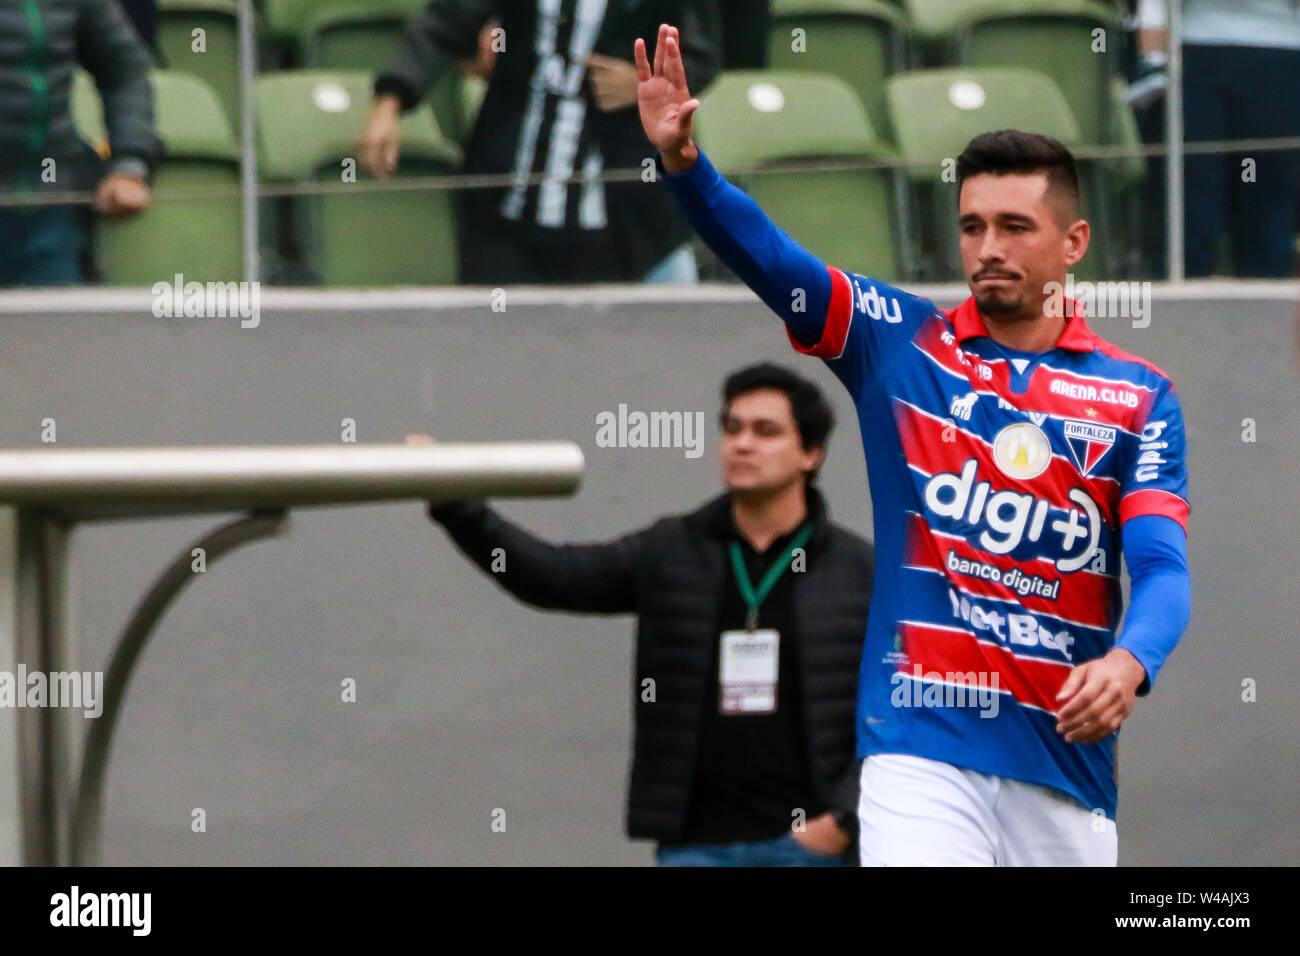 Belo Horizonte, Brazil. 21st July, 2019. MG vs Fortaleza, a matclid for the the 2019 Brazilian Championship, held at Arena Independência, Belo Horizonte, MG. Credit: Dudu Macedo/FotoArena/Alamy Live News - Stock Image